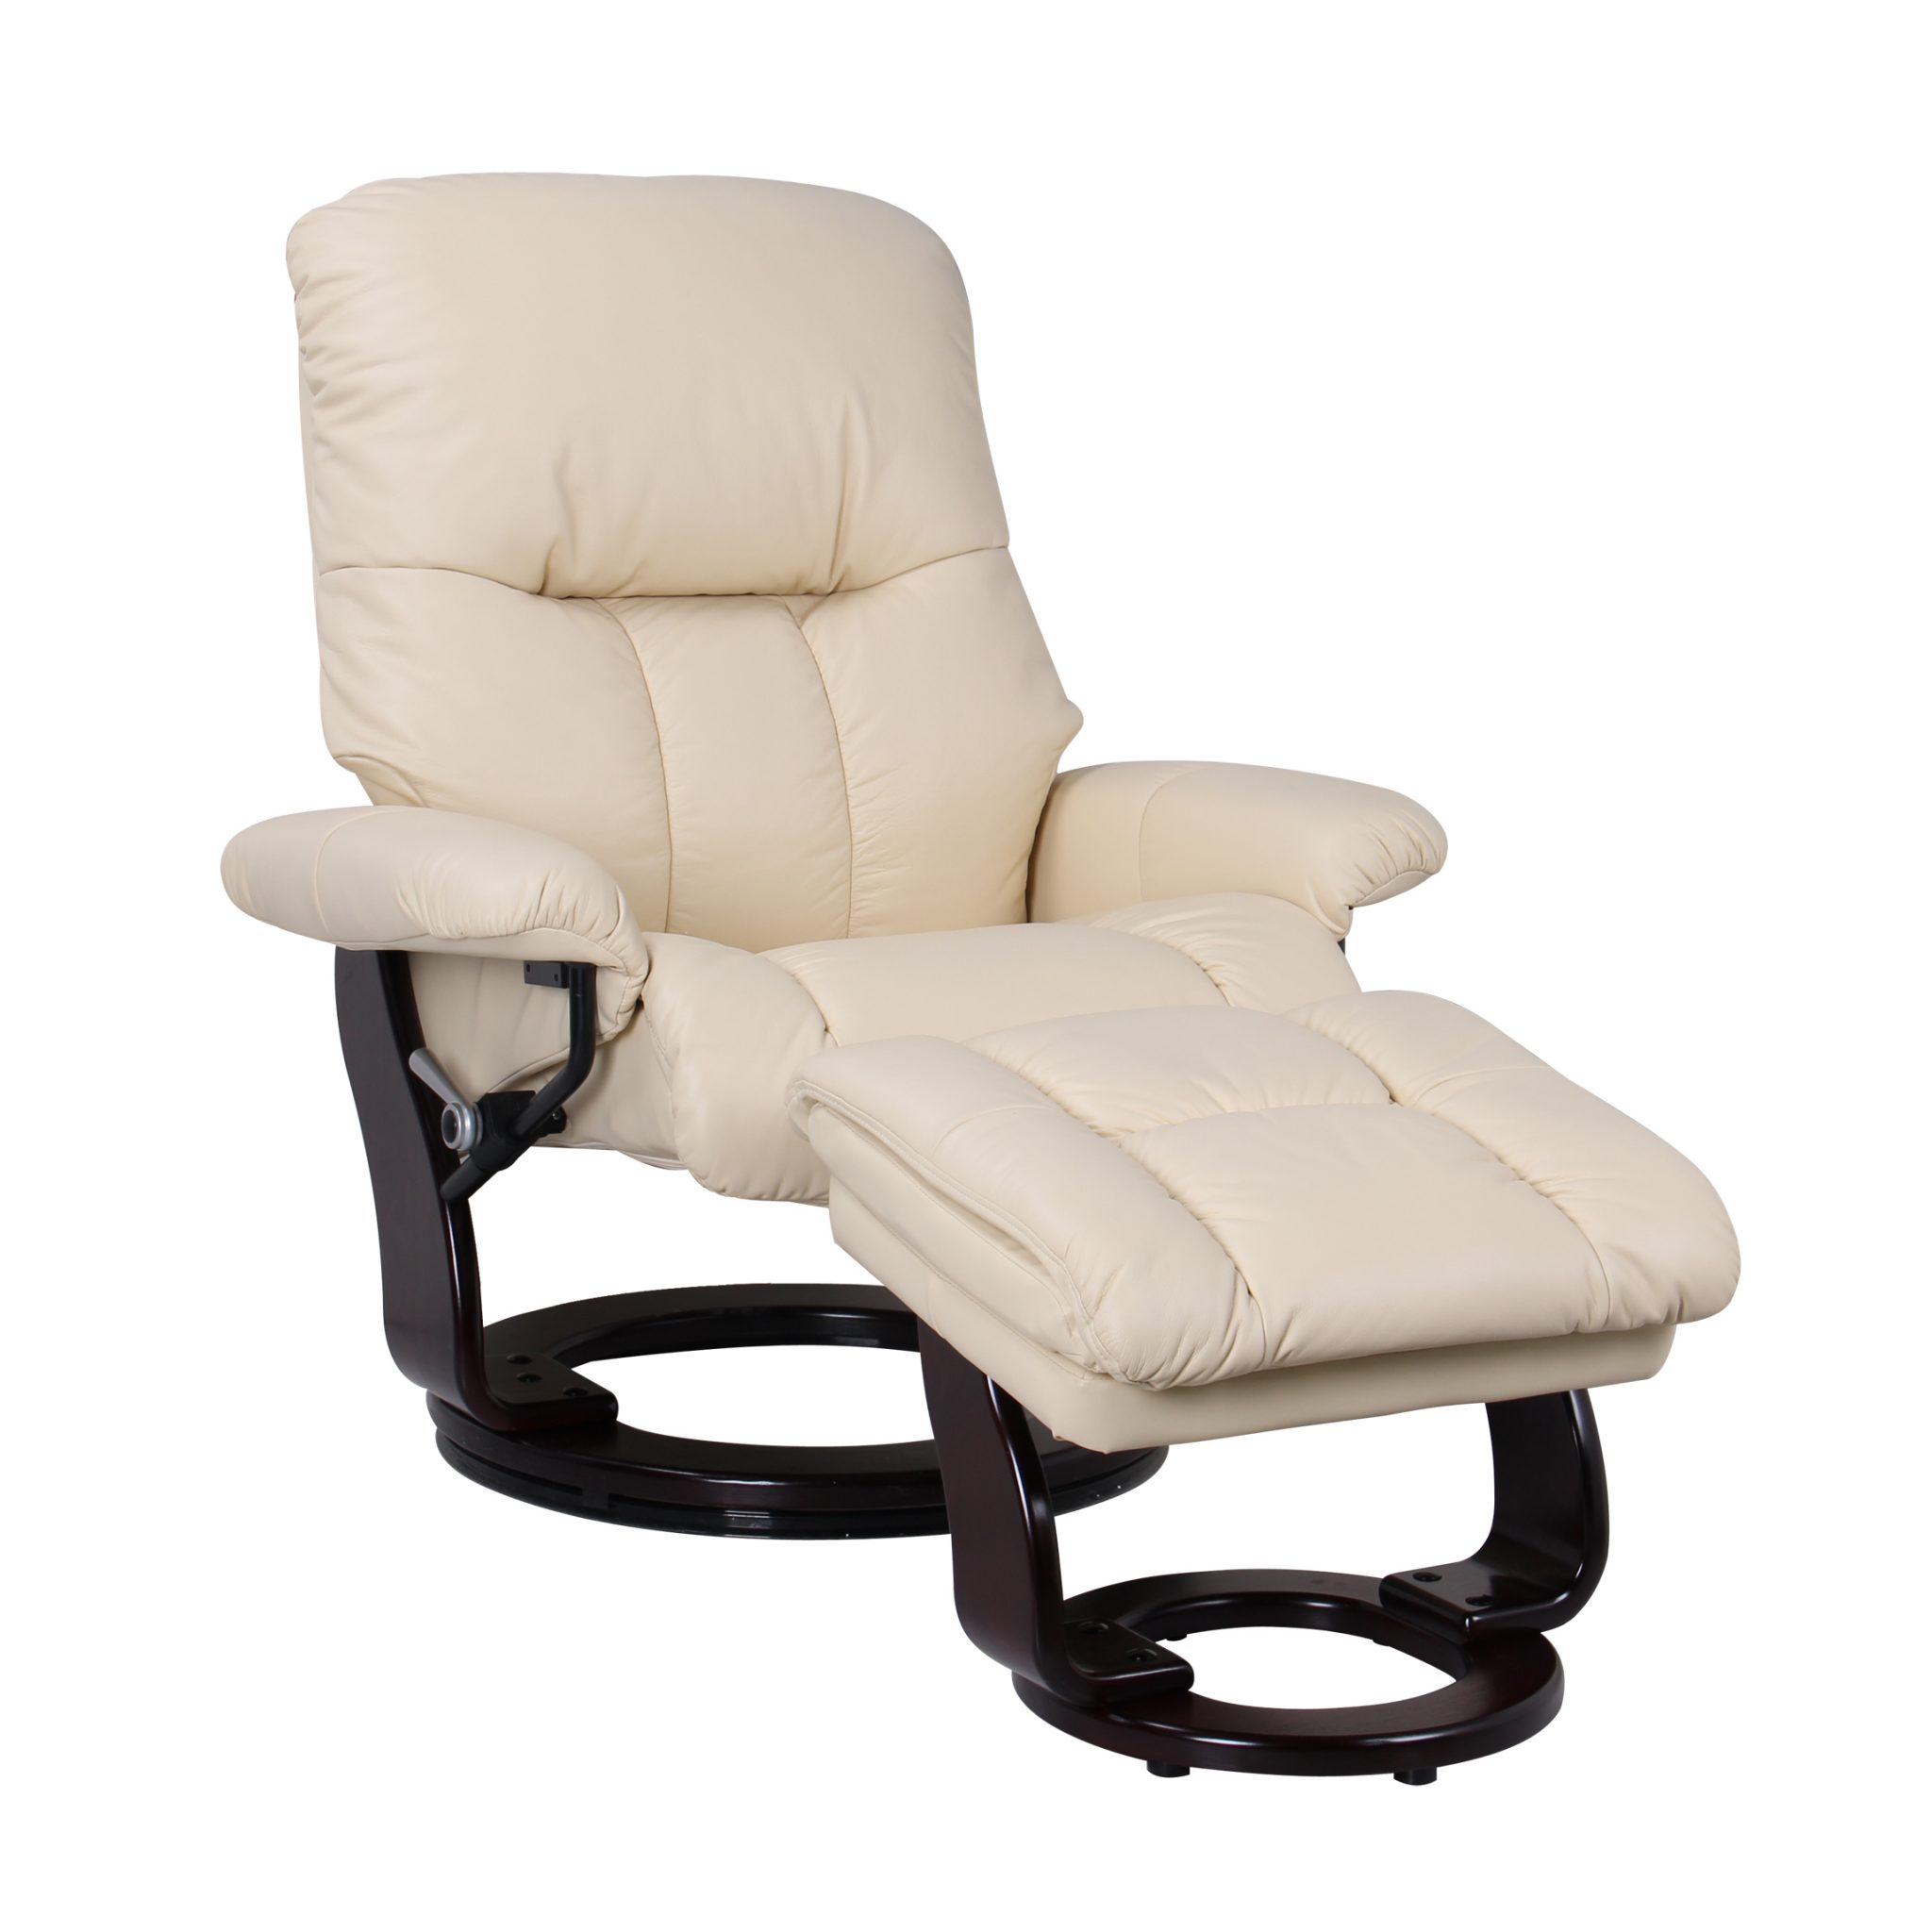 Value City Outdoor Furniture